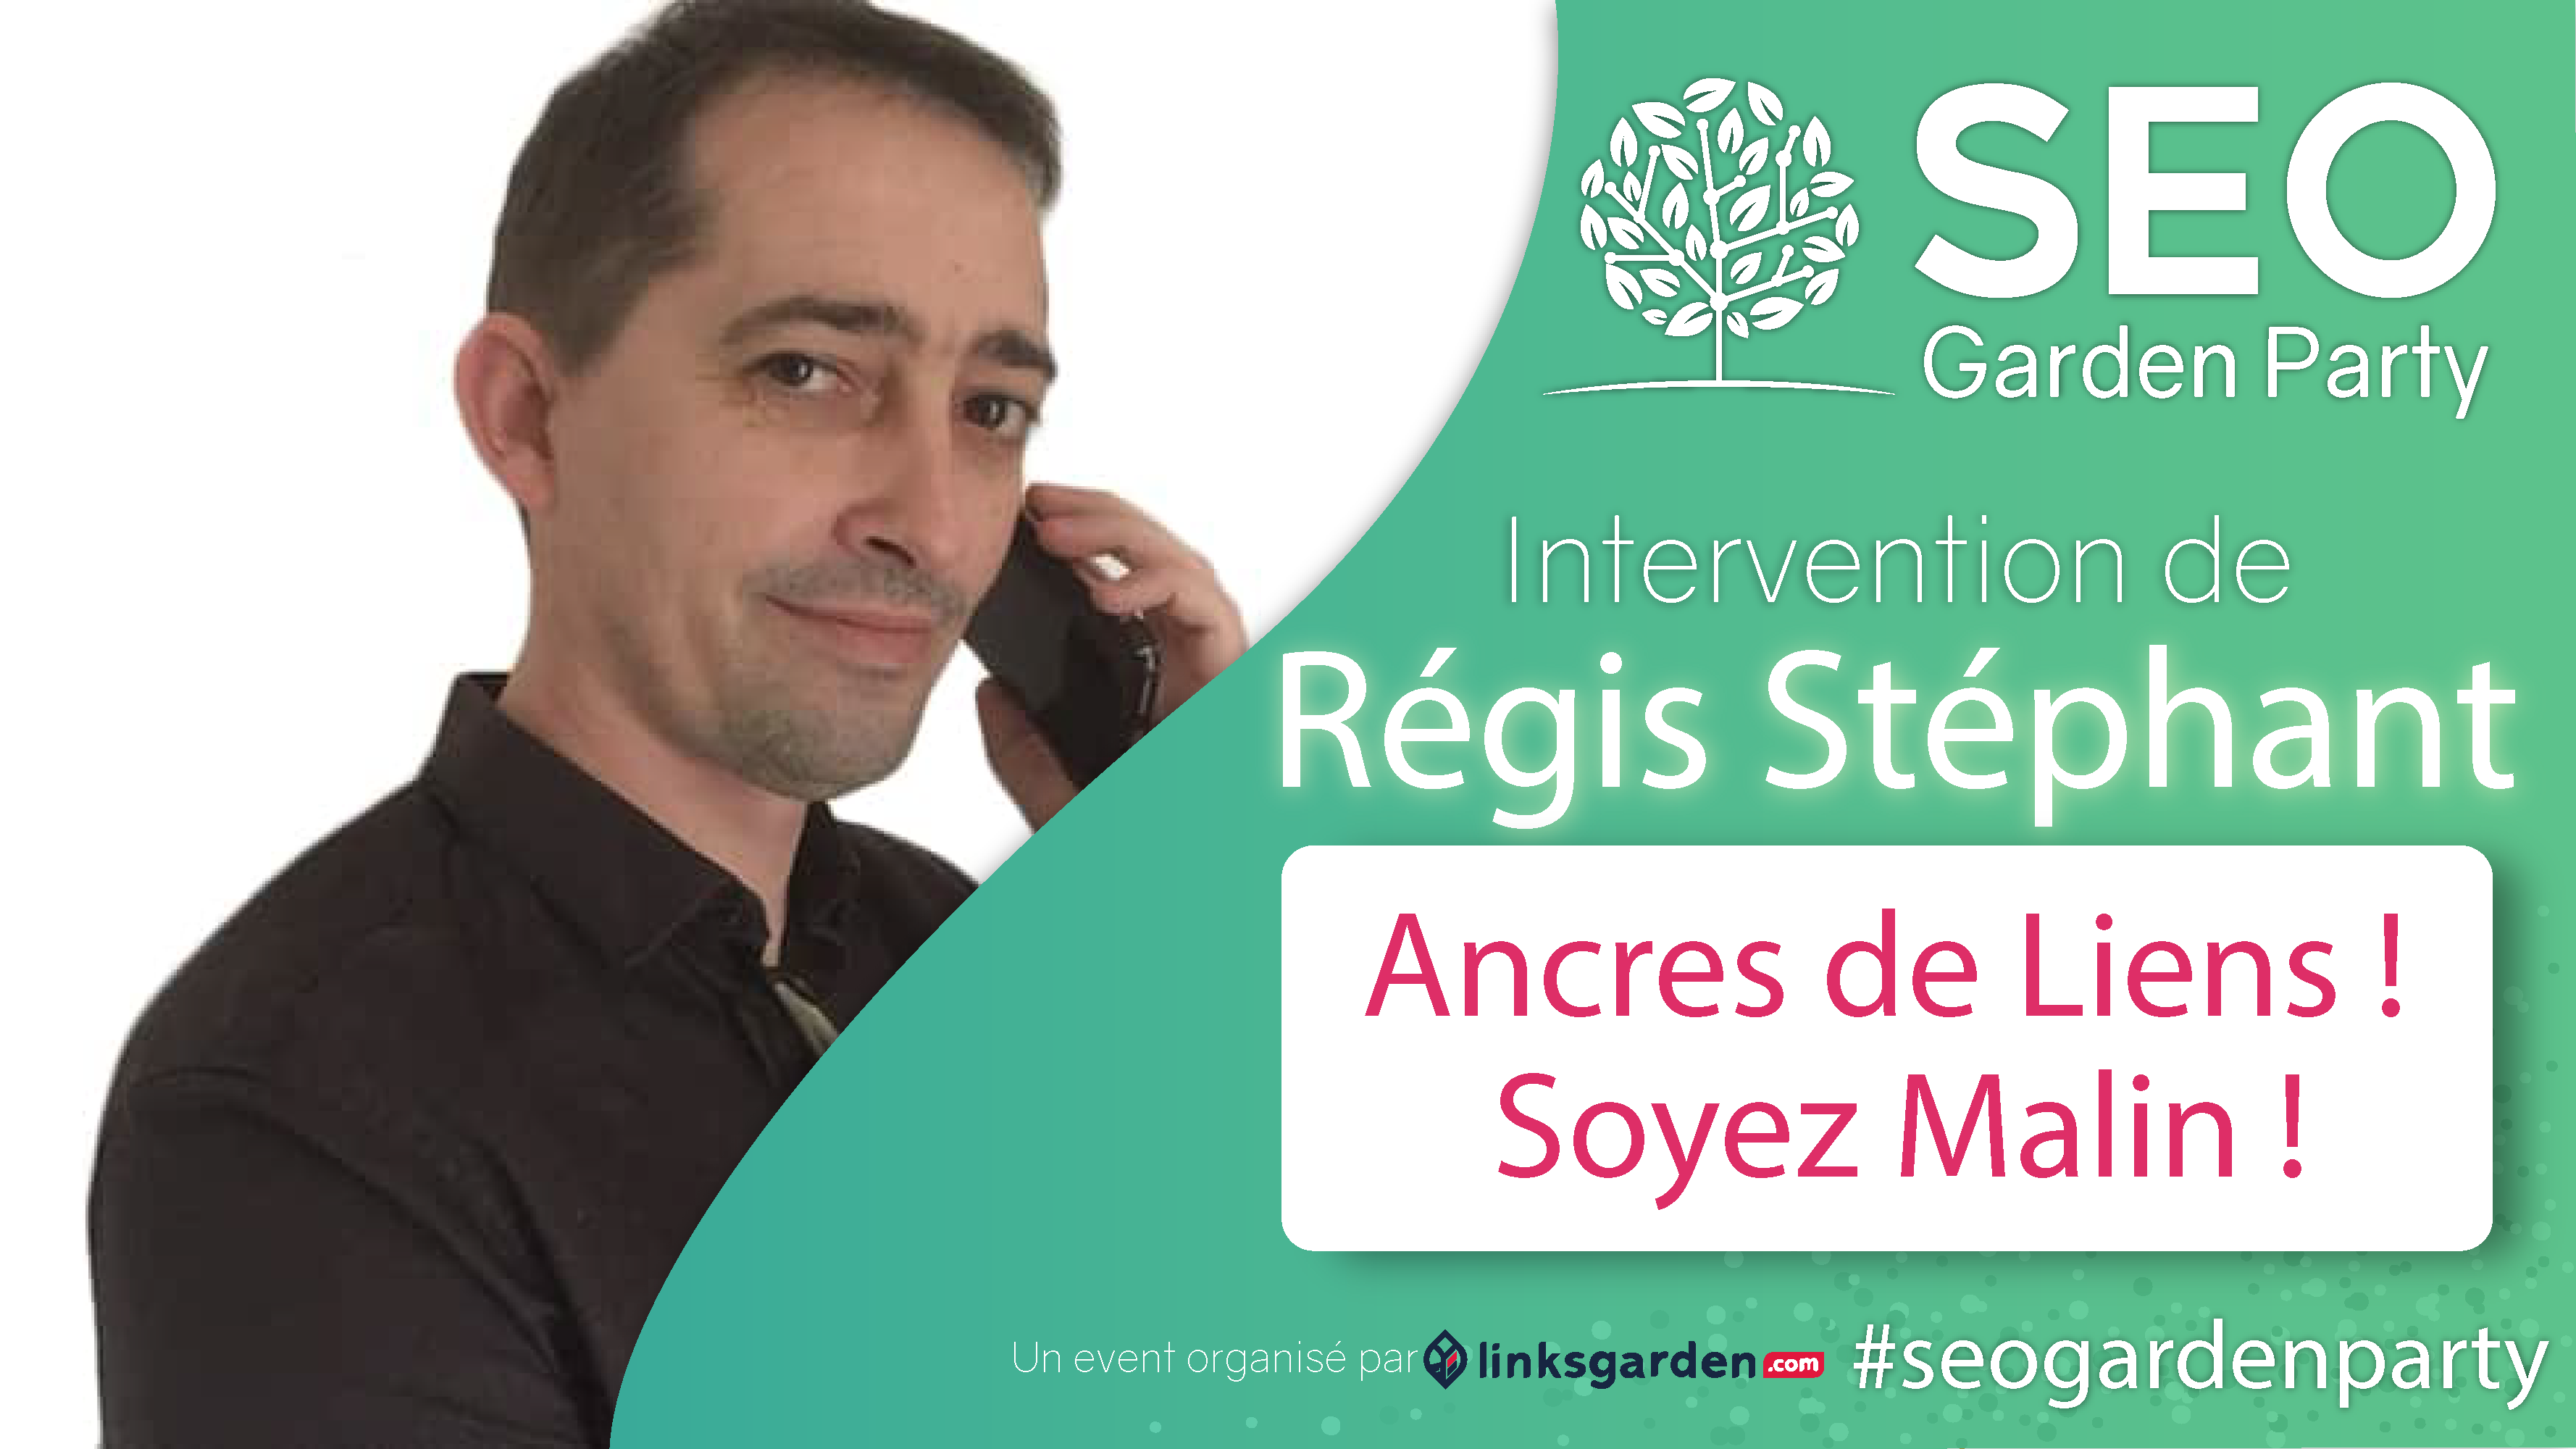 Regis stephant seo garden party par linksgarden